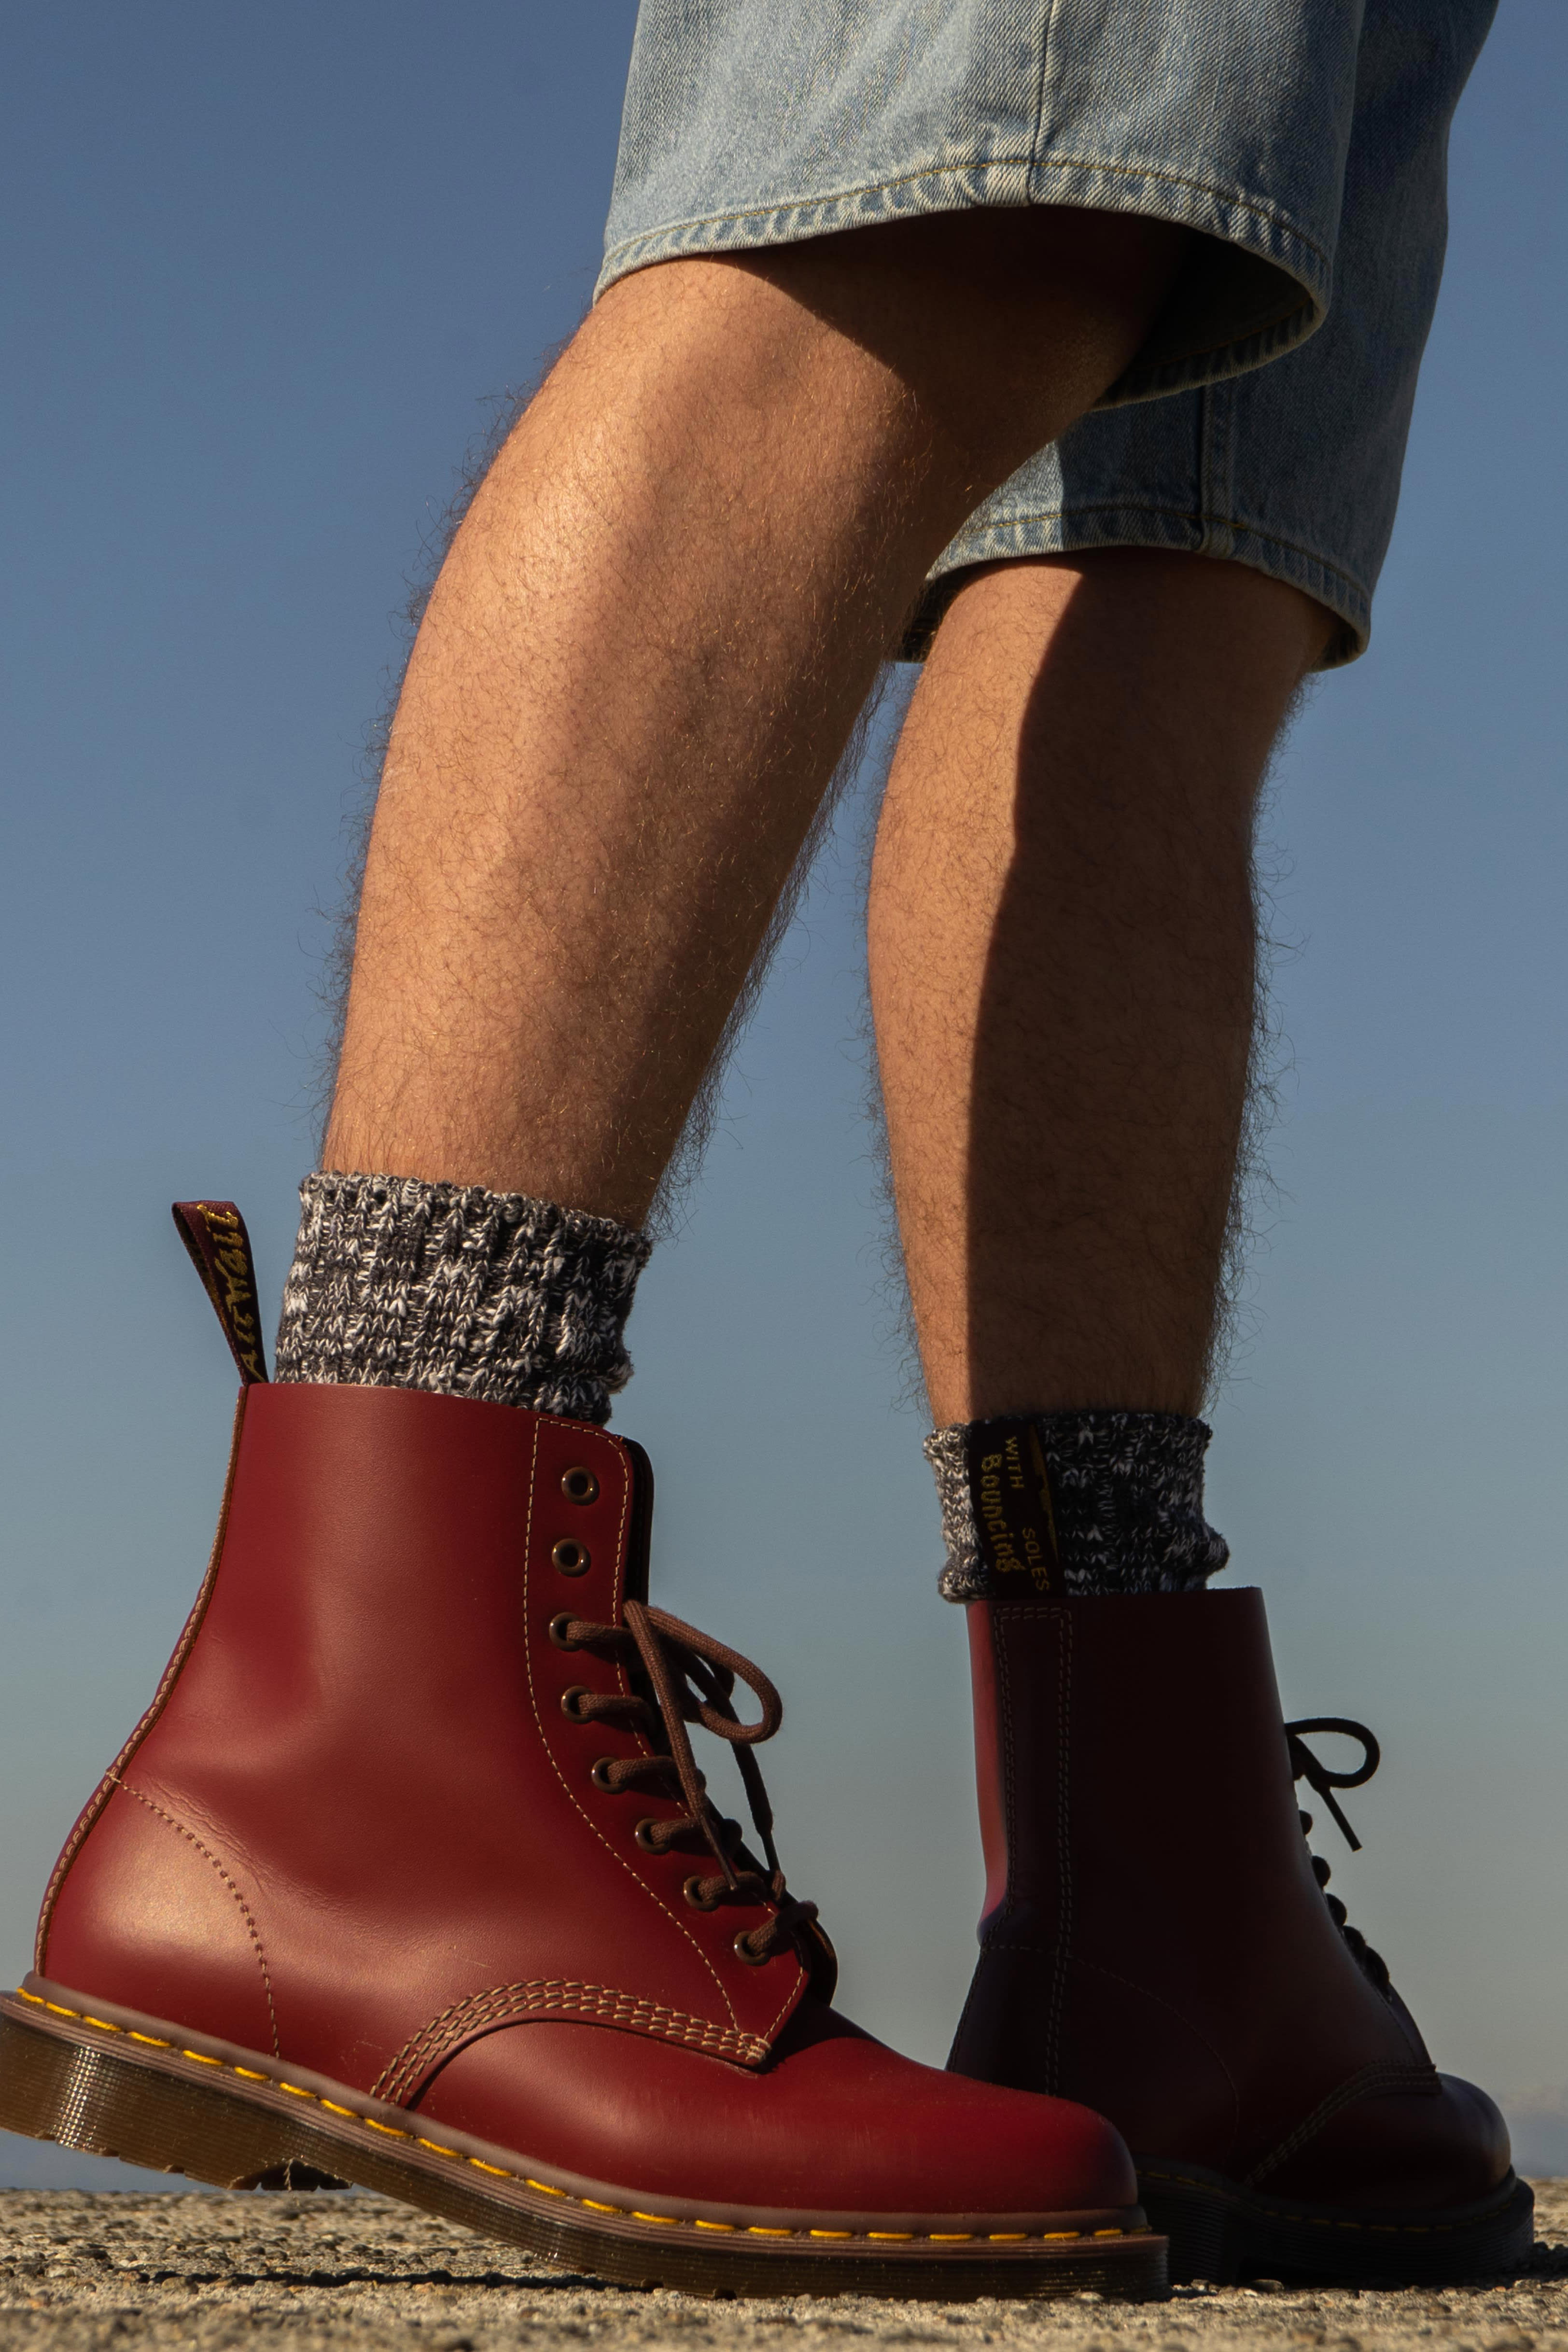 Dr. Martens Made In England look book shot by eye_C